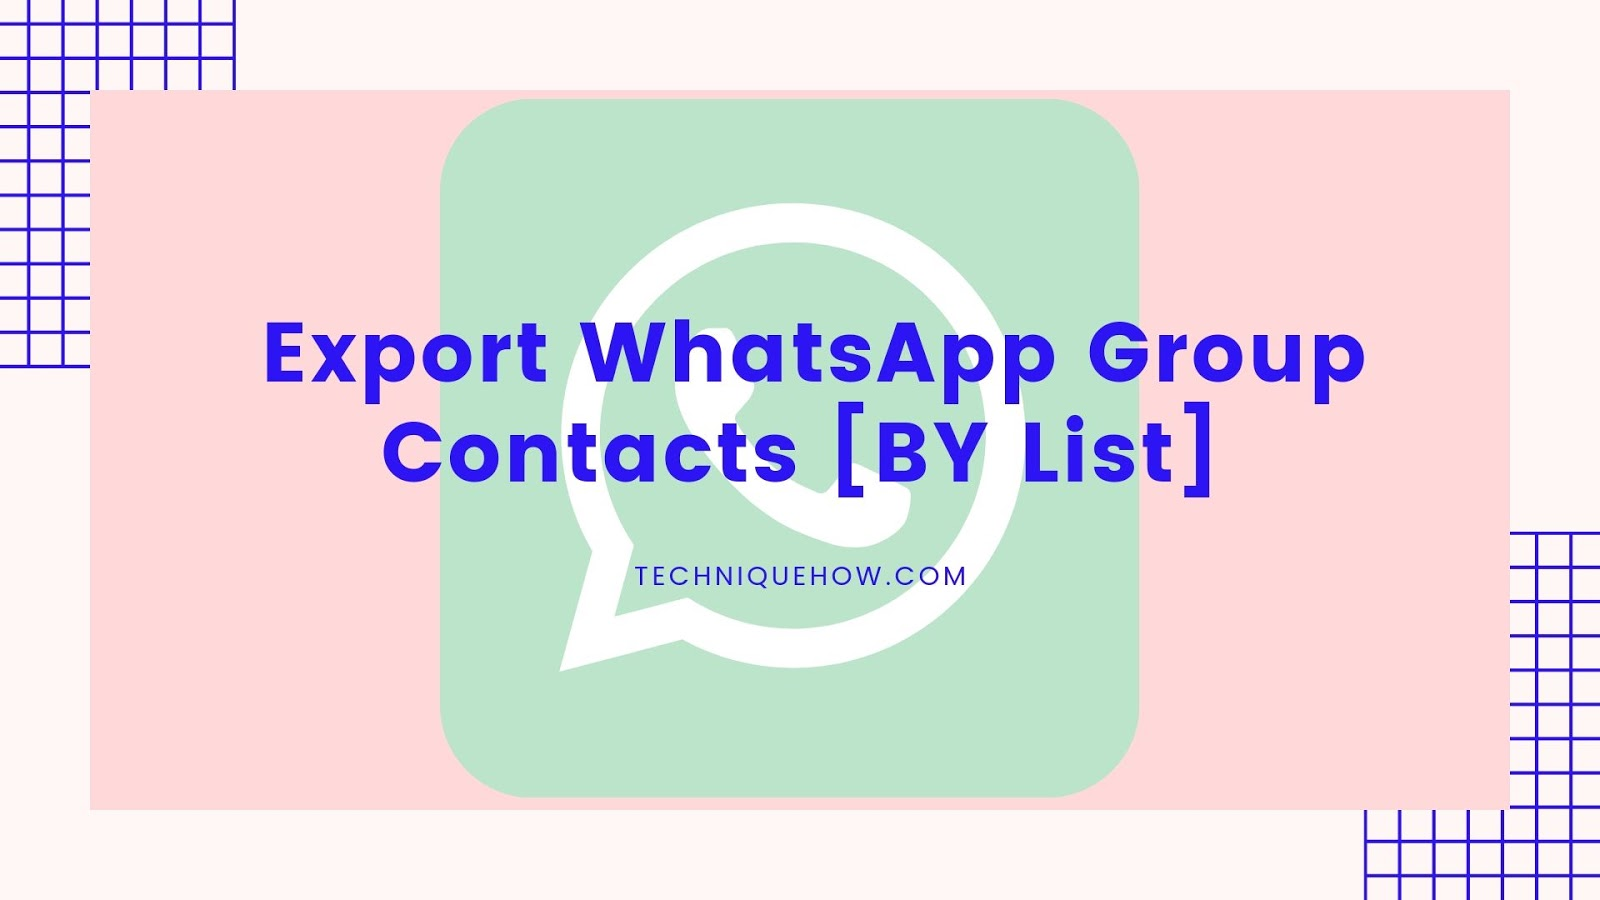 Export WhatsApp Group Contacts